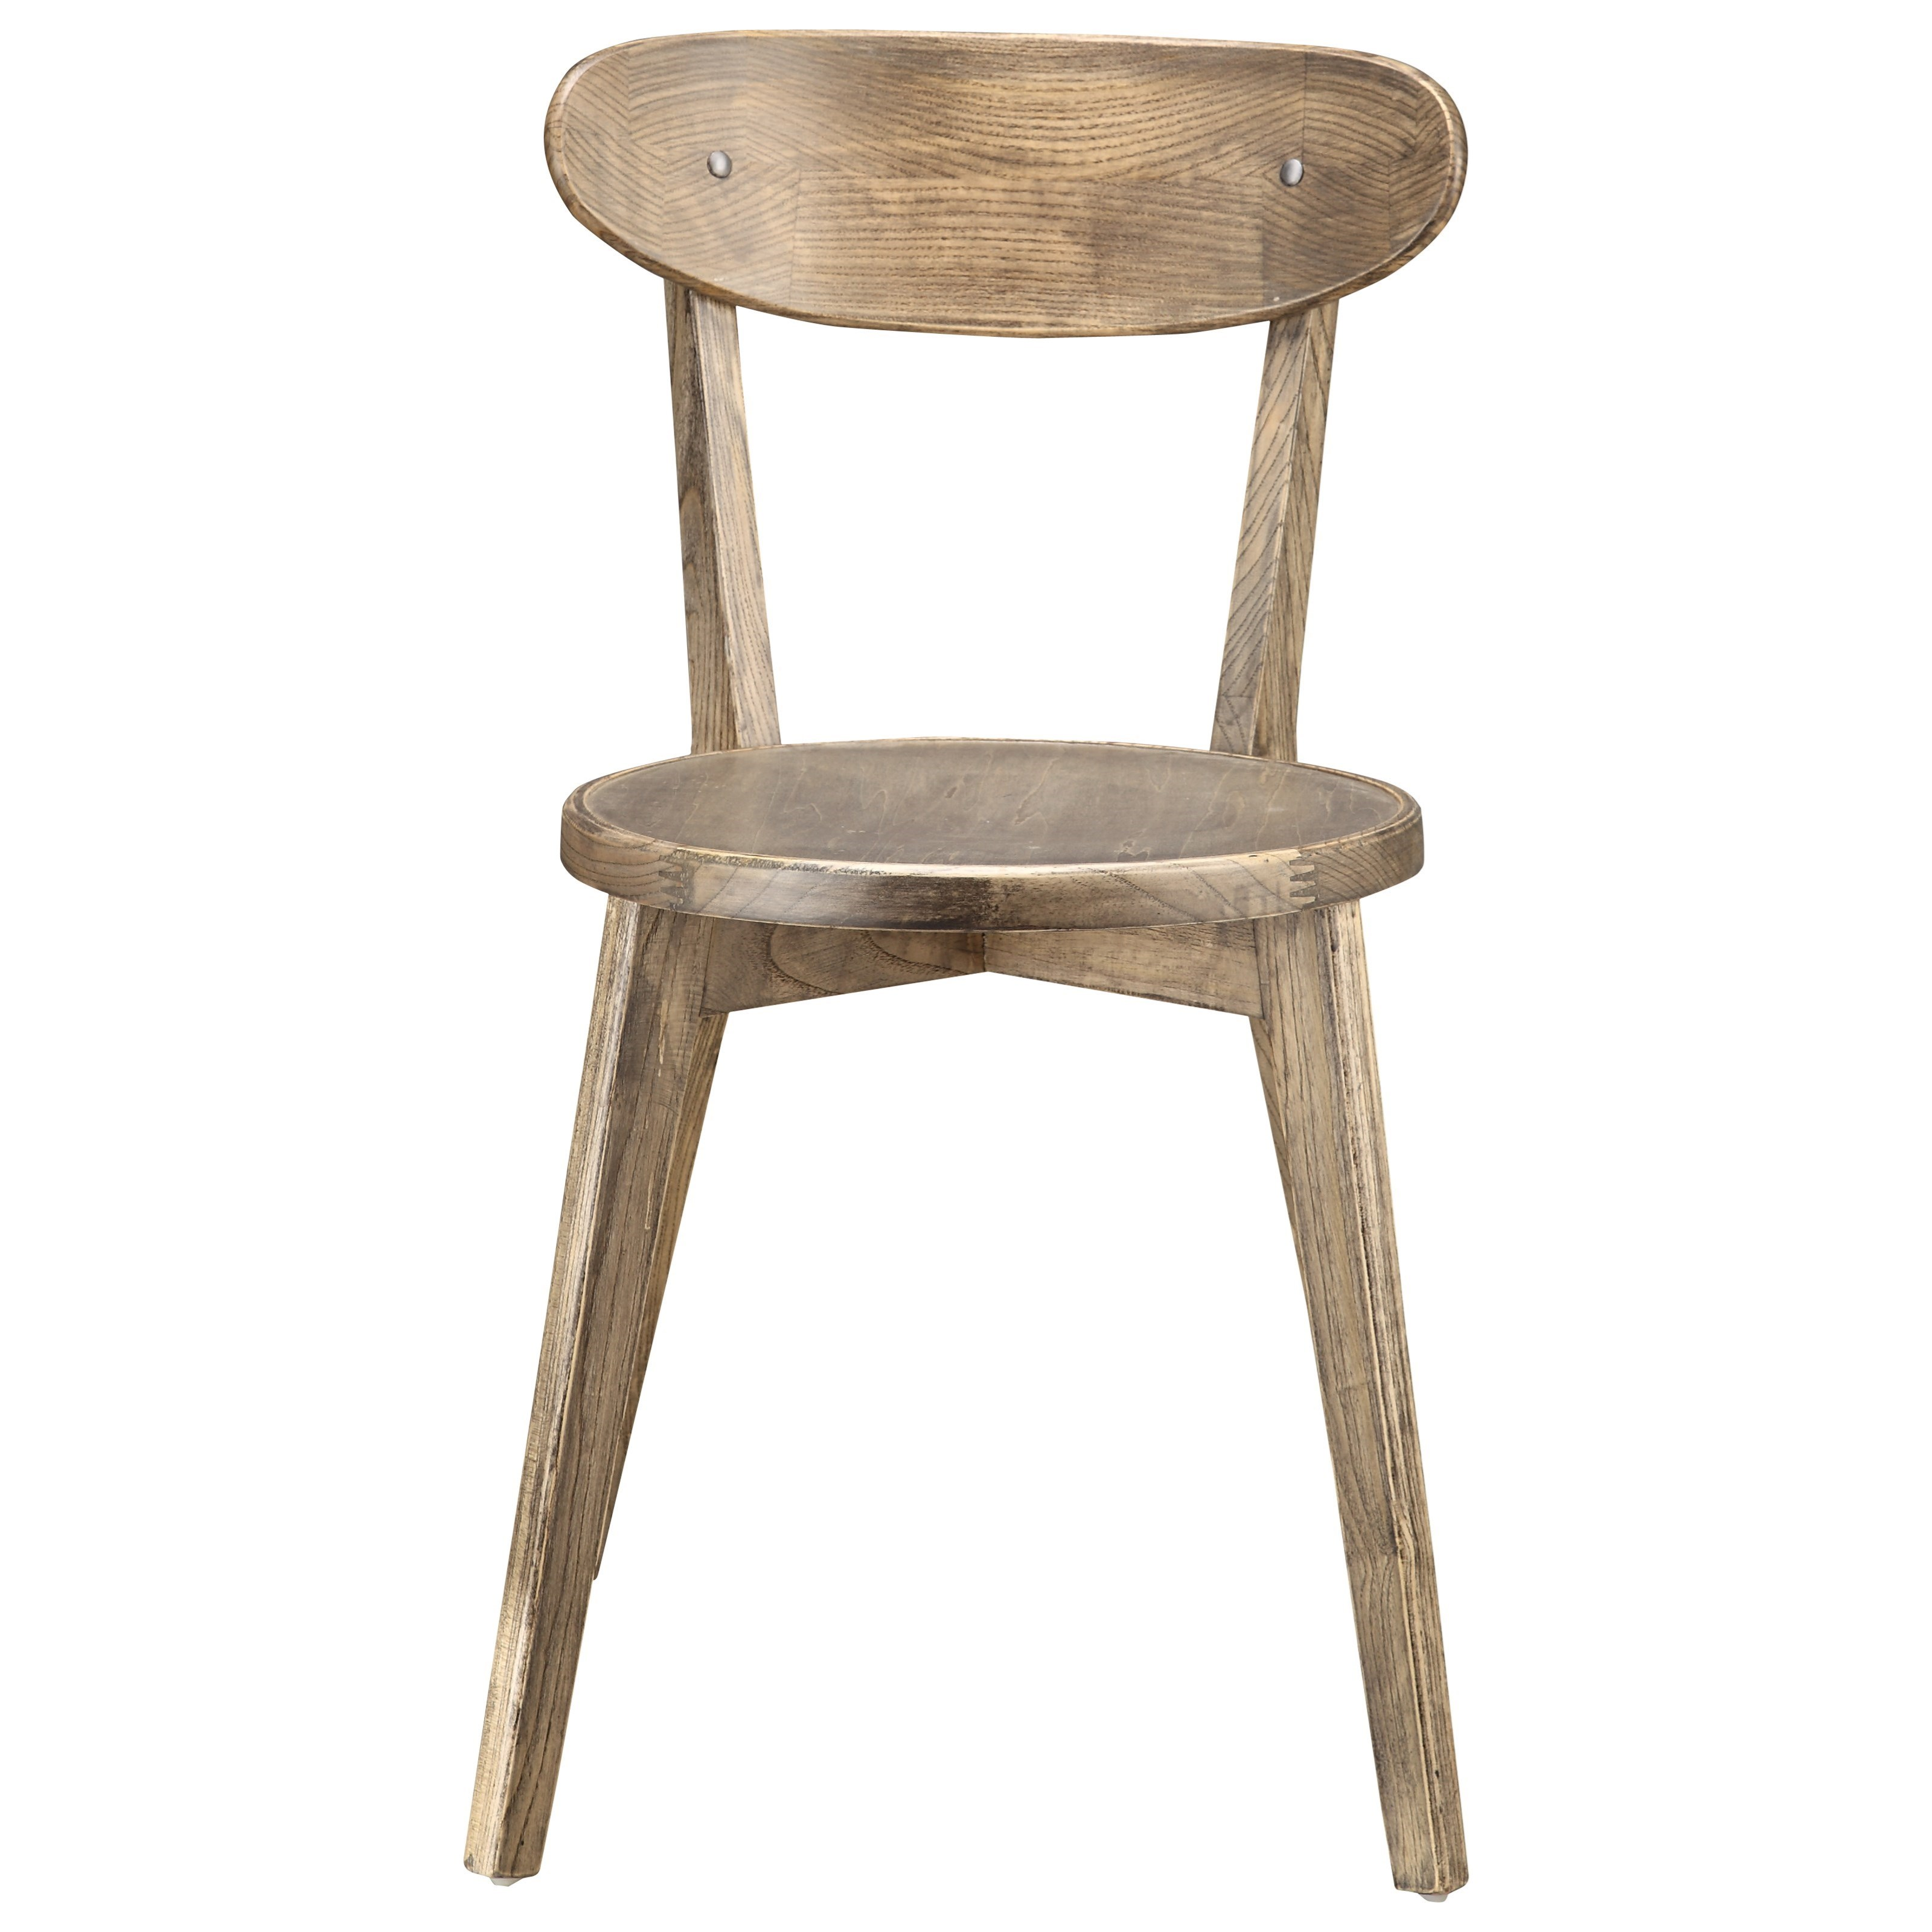 Moe's Home Collection Aldus  Dining Chair - M2 - Item Number: FG-1004-03